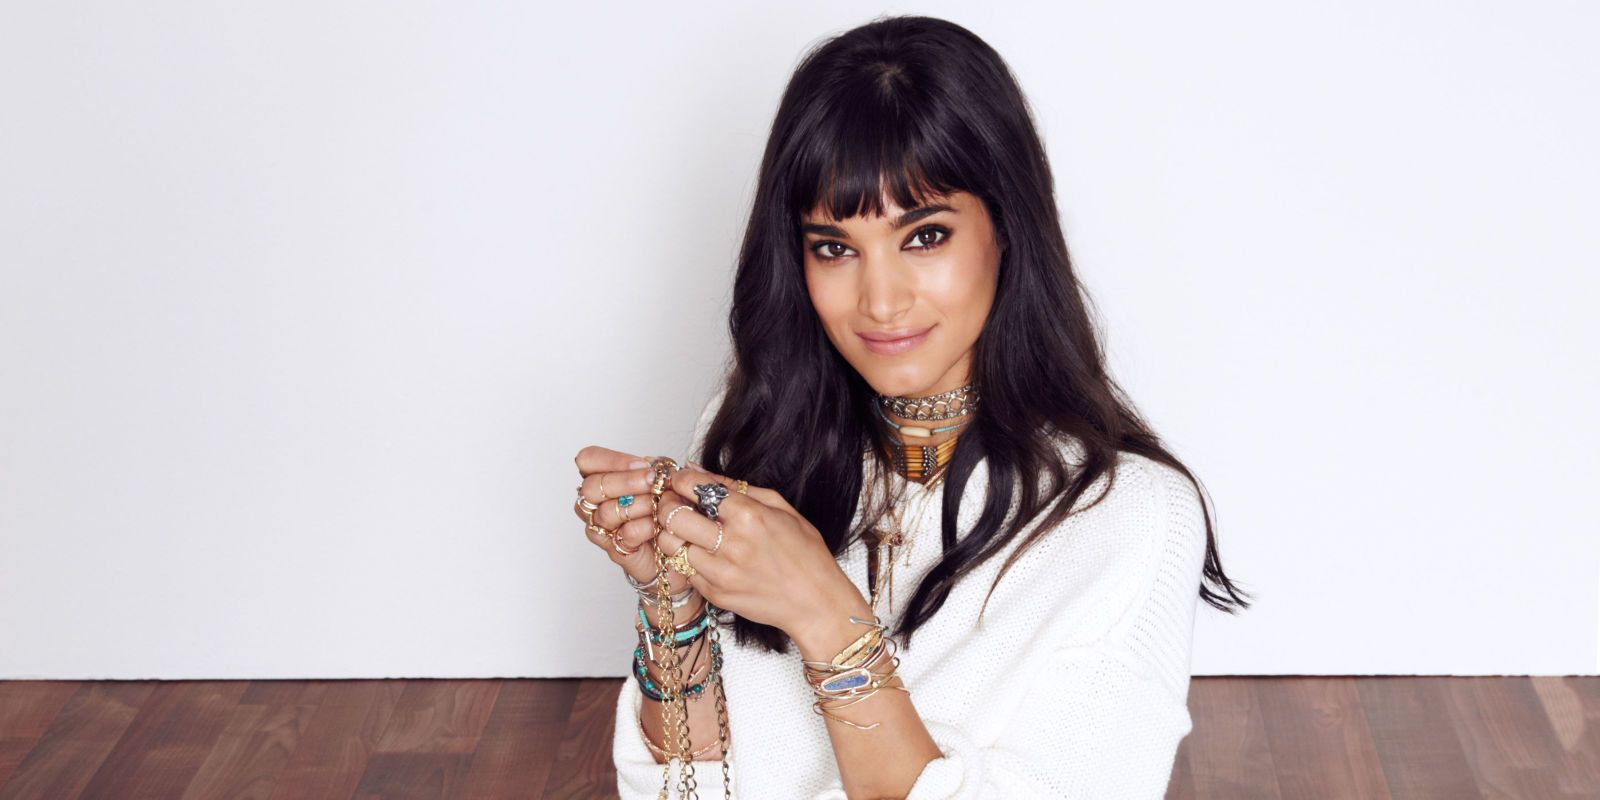 Sofia Boutella Jewelry - Sofia Boutella Interview